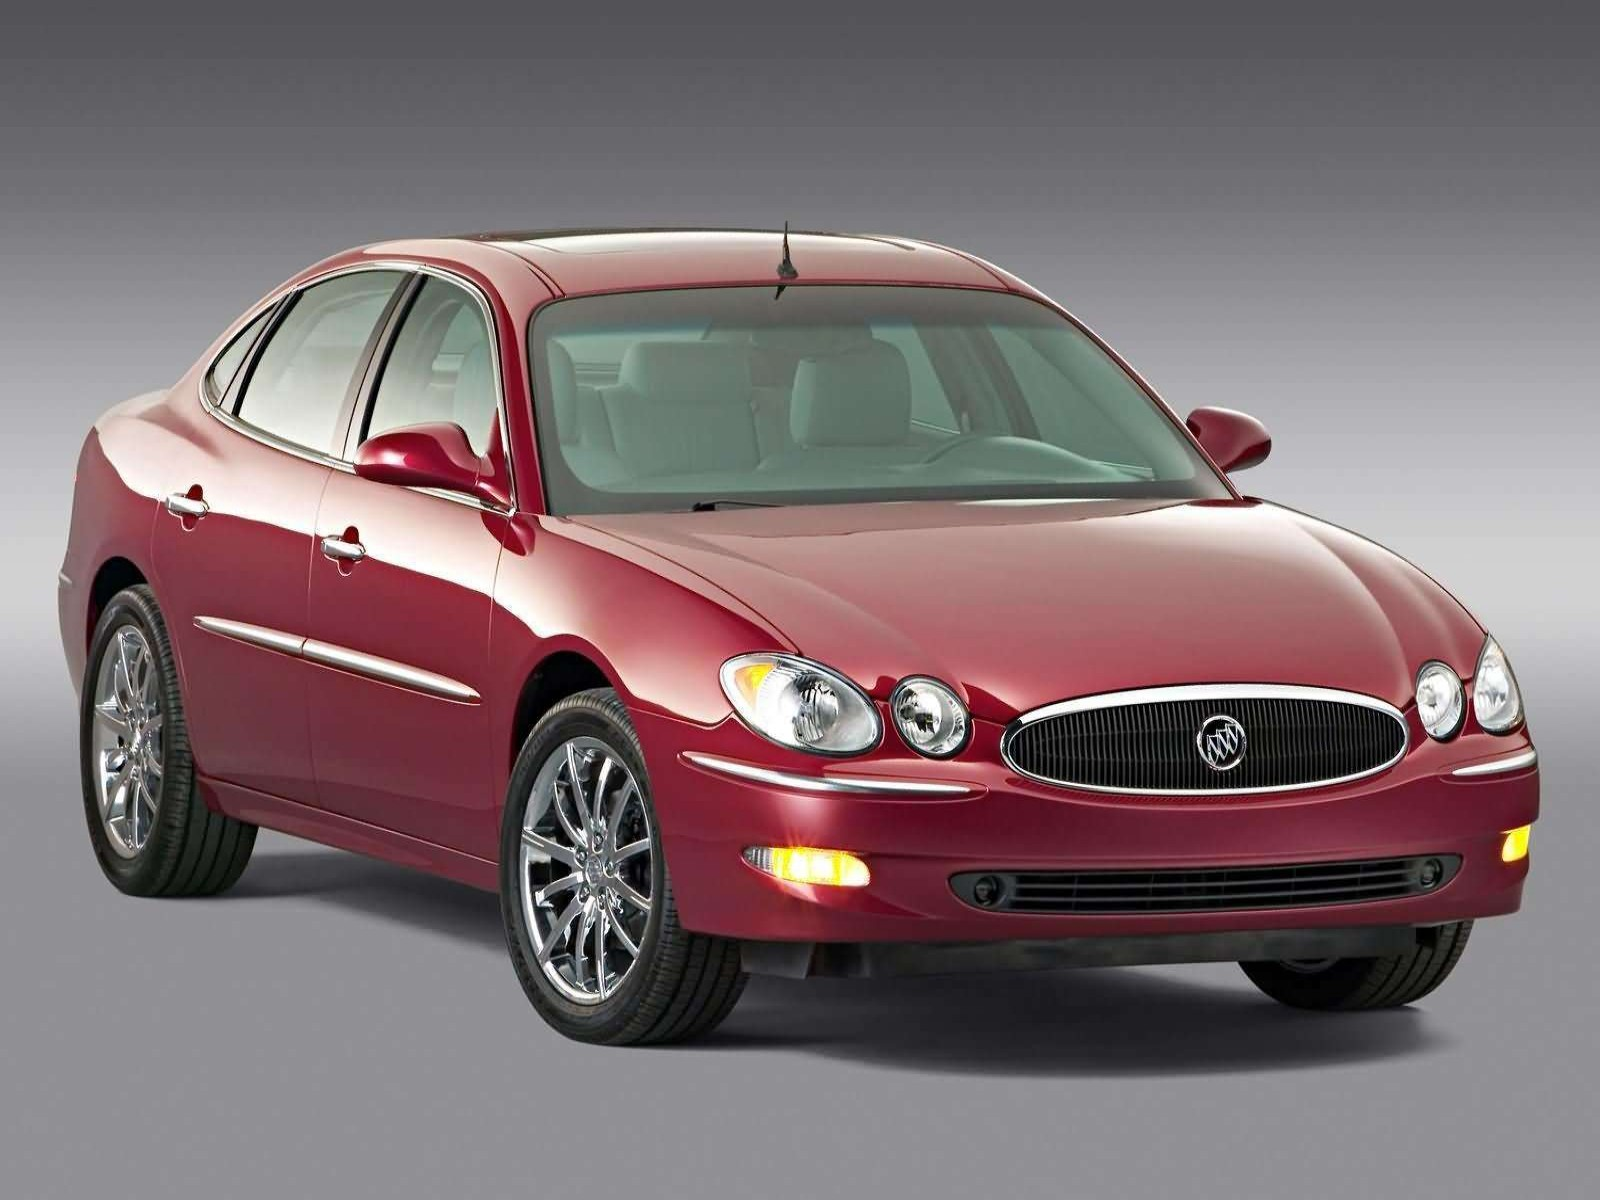 Buick Lacrosse Csx on 2000 Buick Lesabre Limited